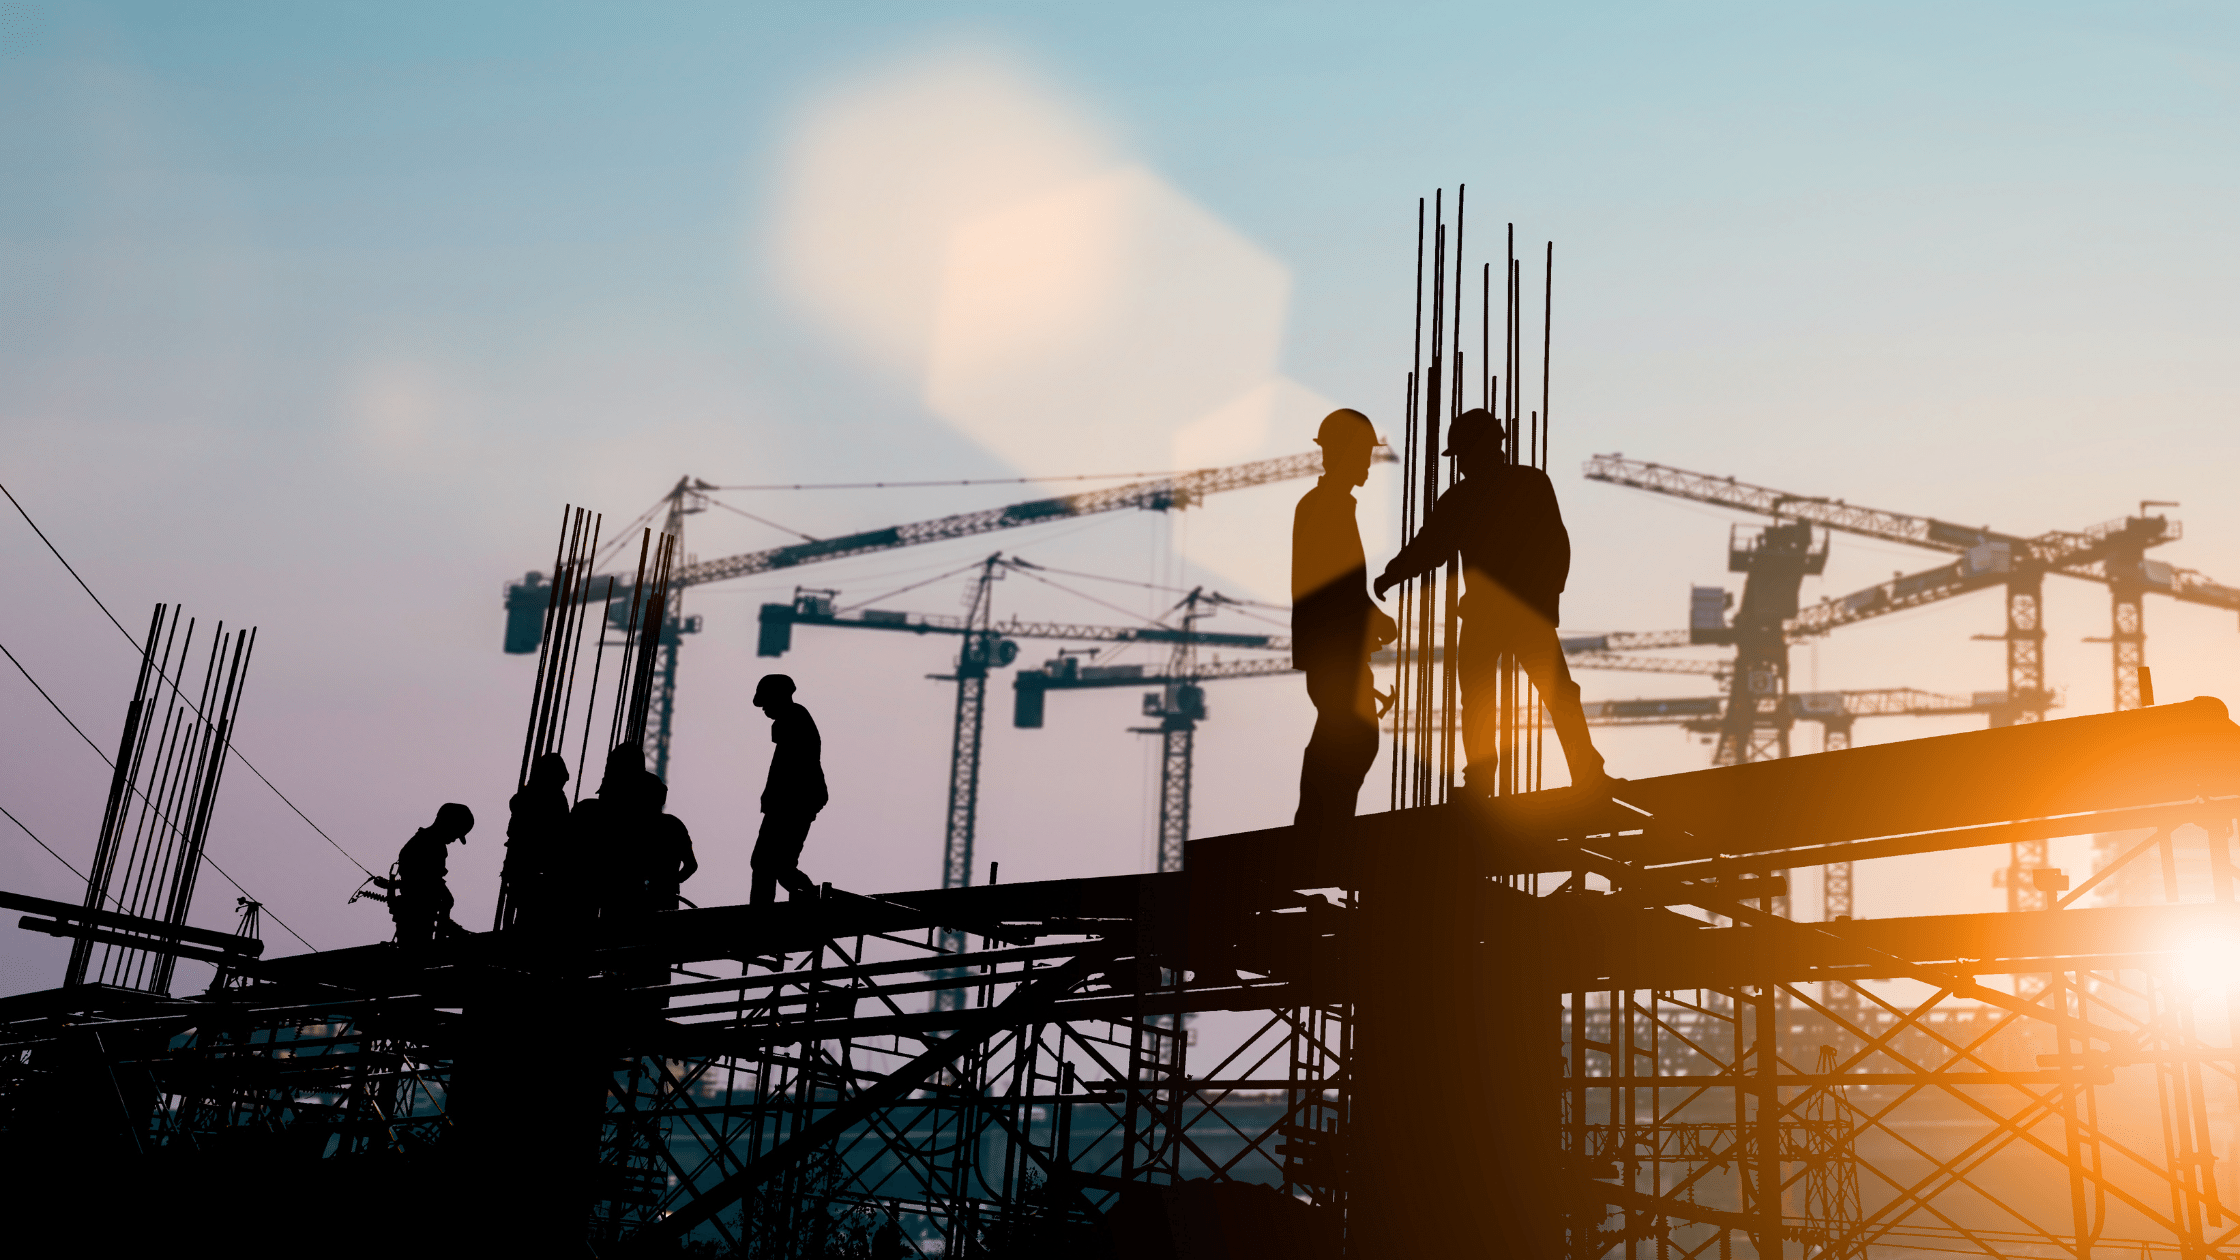 Top 10 OSHA Violations Of 2020 And How To Prevent Them